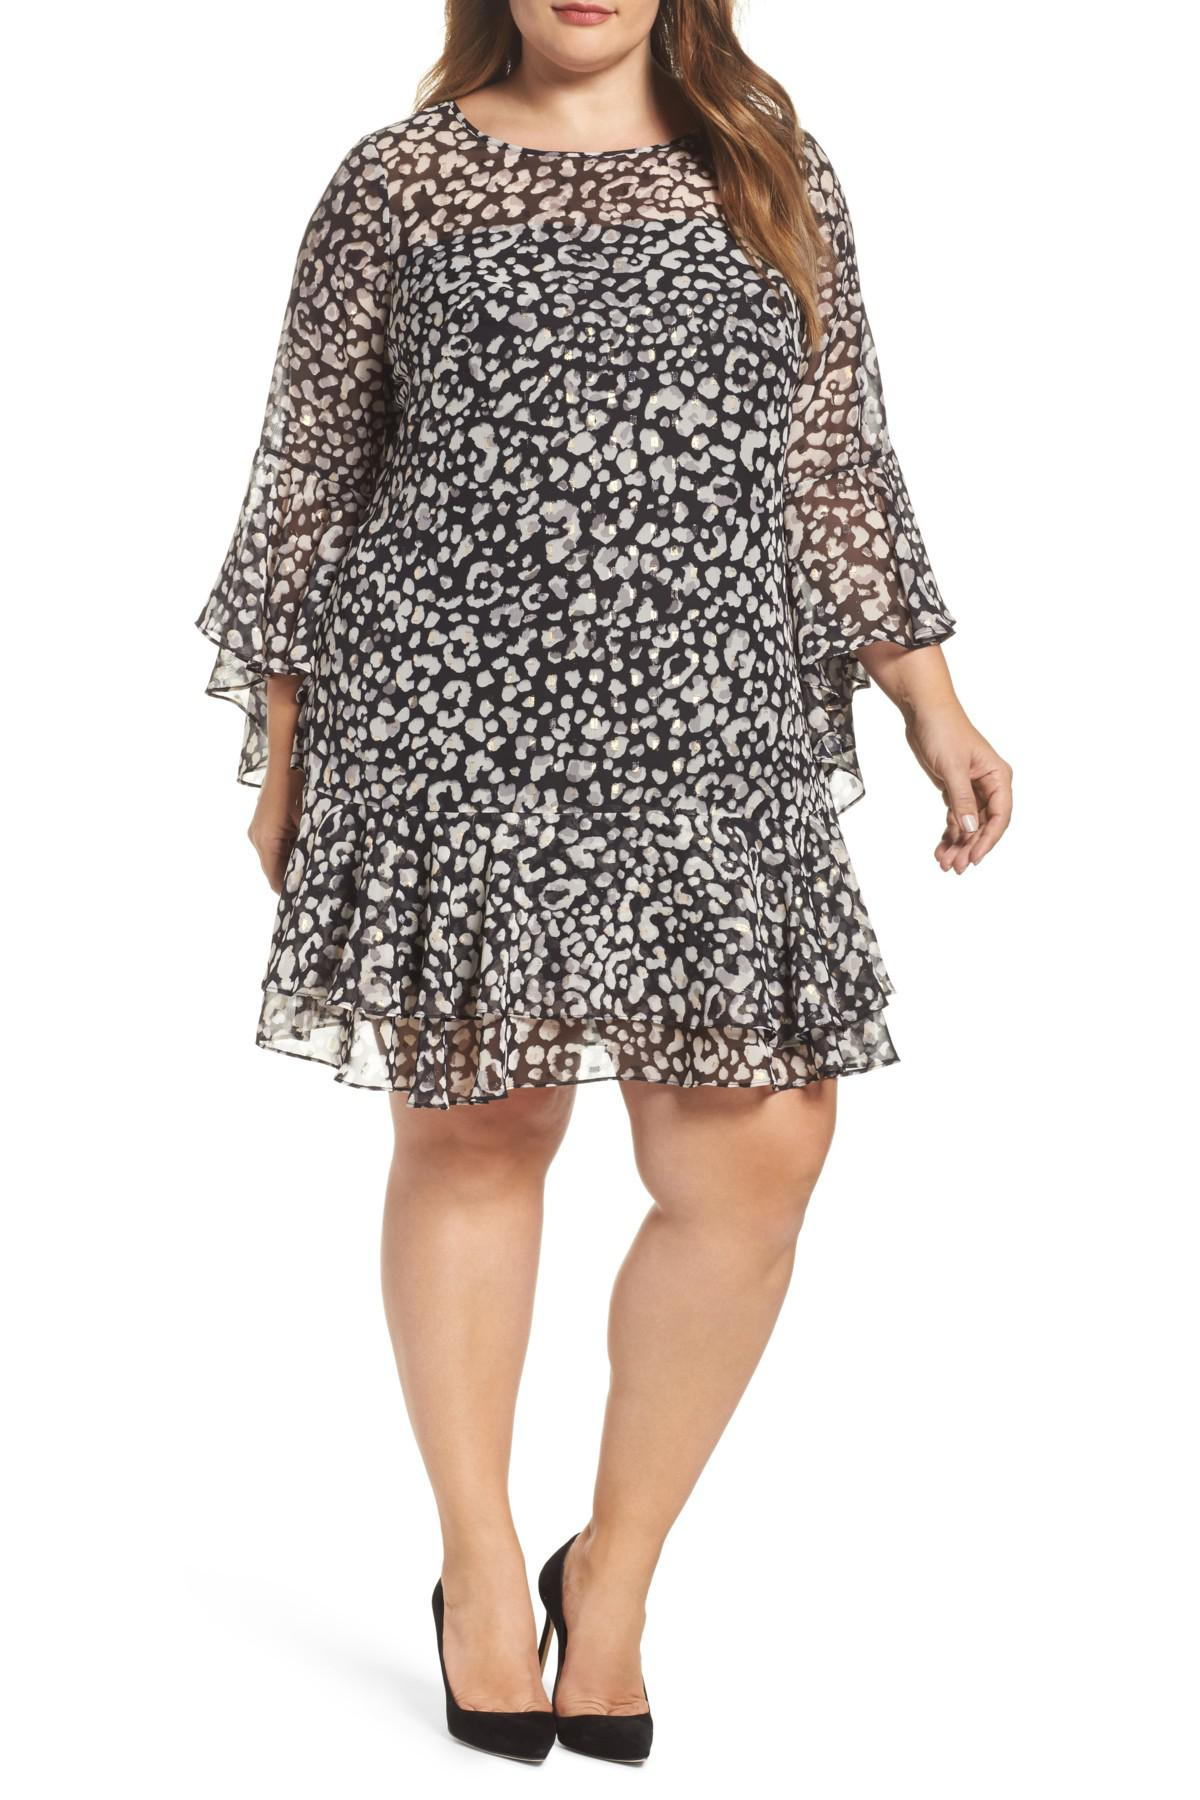 Nordstrom Rack Womens Plus Size Dresses